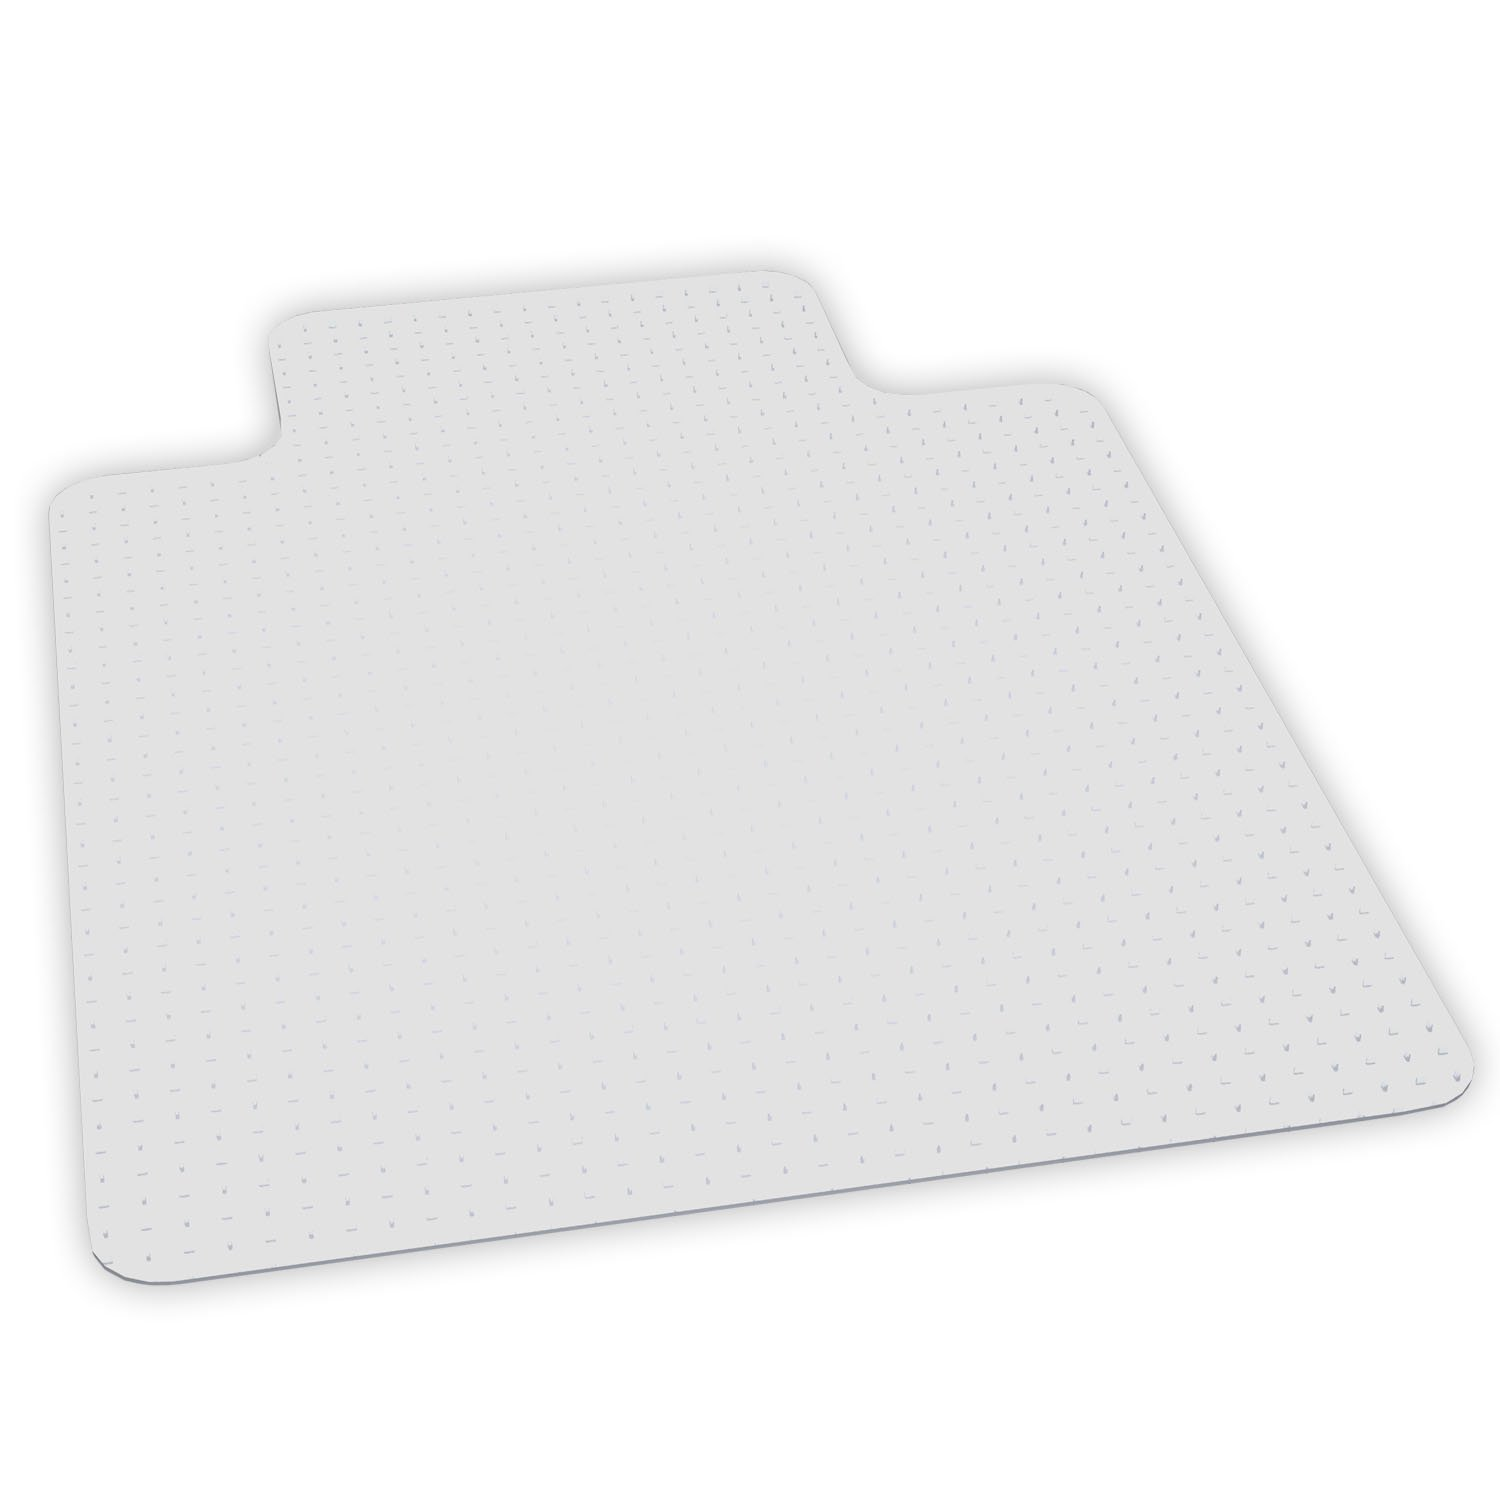 ES Robbins EverLife Anchor Bar with Lipped Vinyl Chair Mat for Pile Carpet, 36 by 48-Inch, Clear 121826